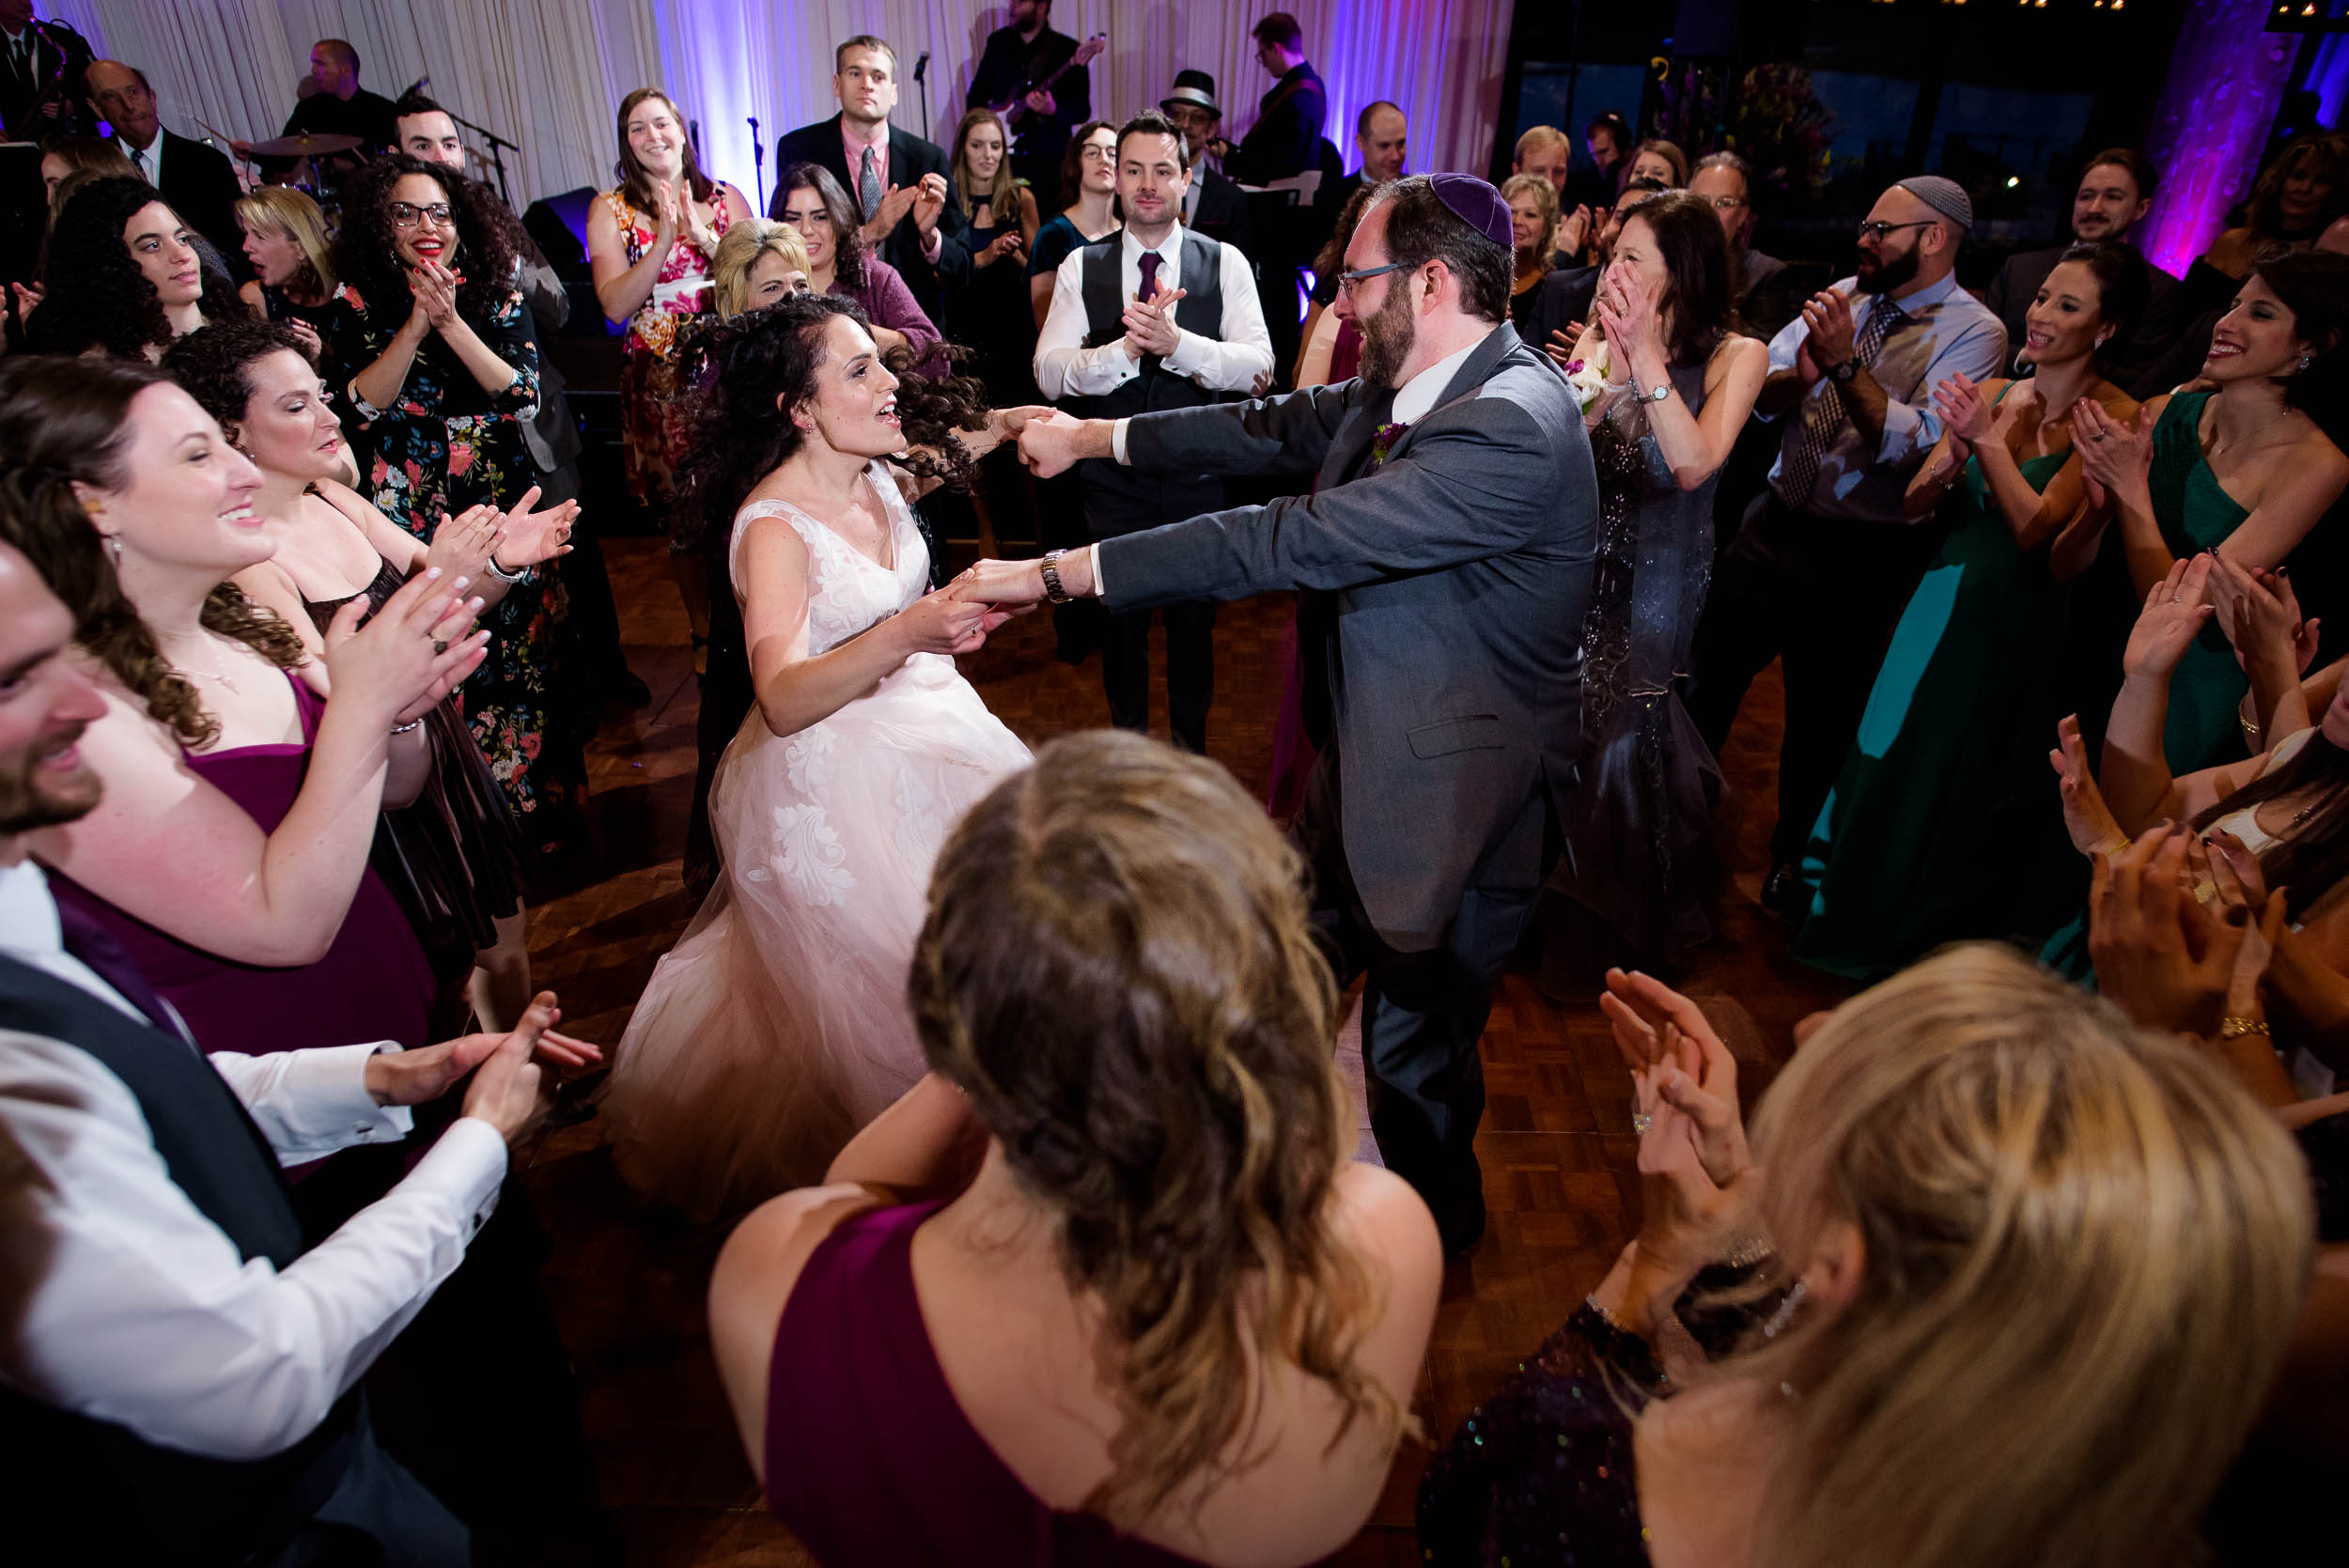 Horah dance during an Independence Grove Chicago wedding.